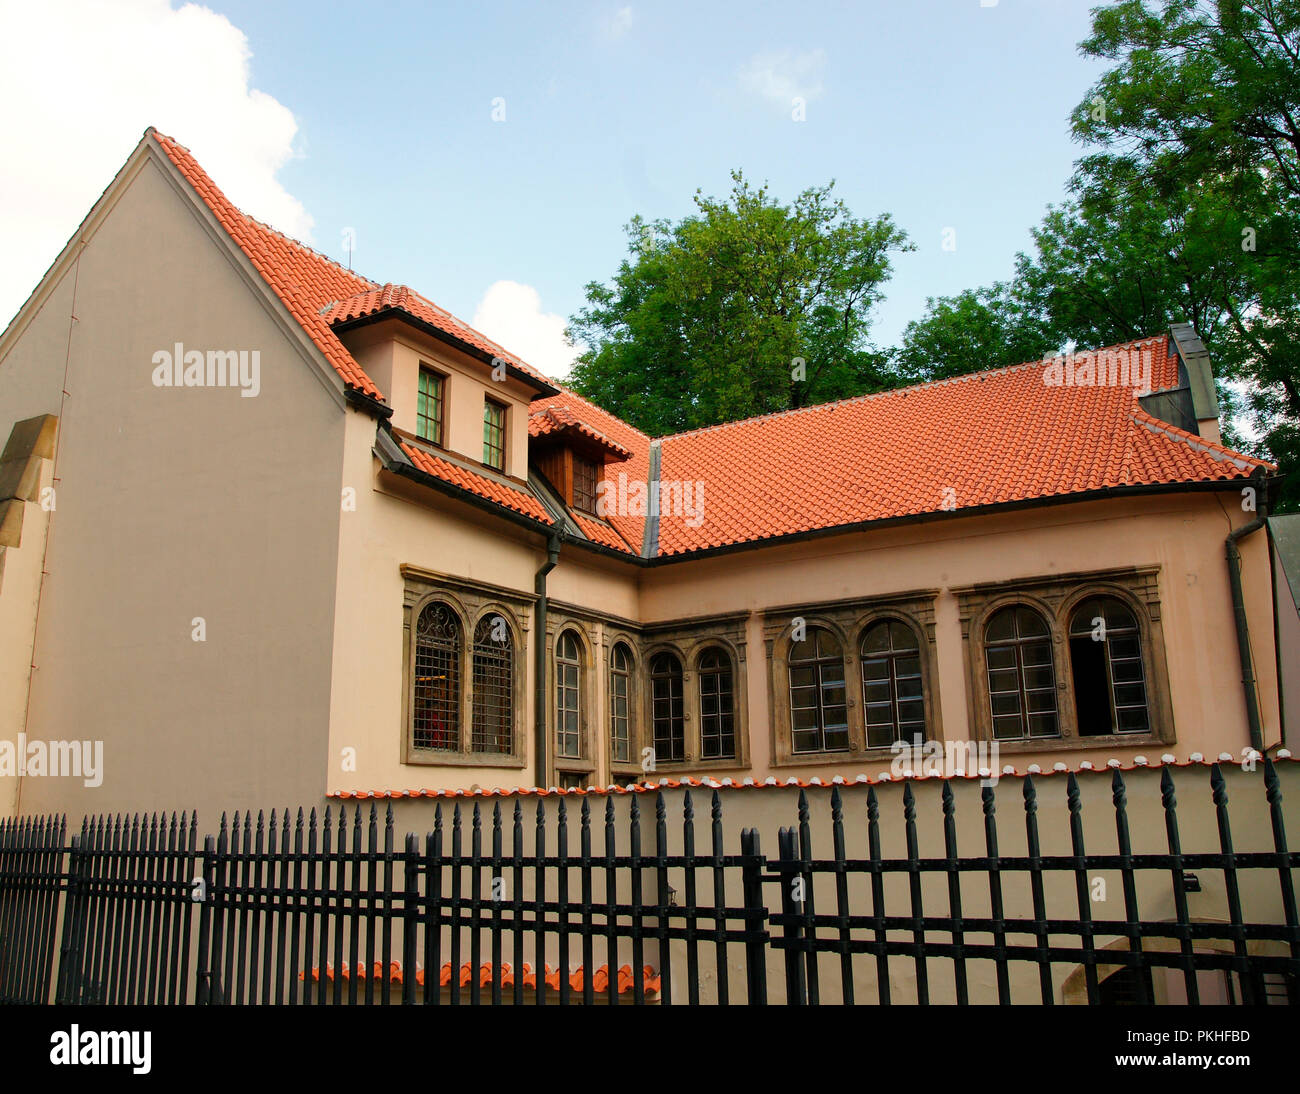 Czech Republic. Prague. Pinkas Synagogue. The second oldest surviving synagogue in Prague, 1535. Nowadays is administered by the Jewish Museum. Josefov or Jewish quarter. Old Town. - Stock Image